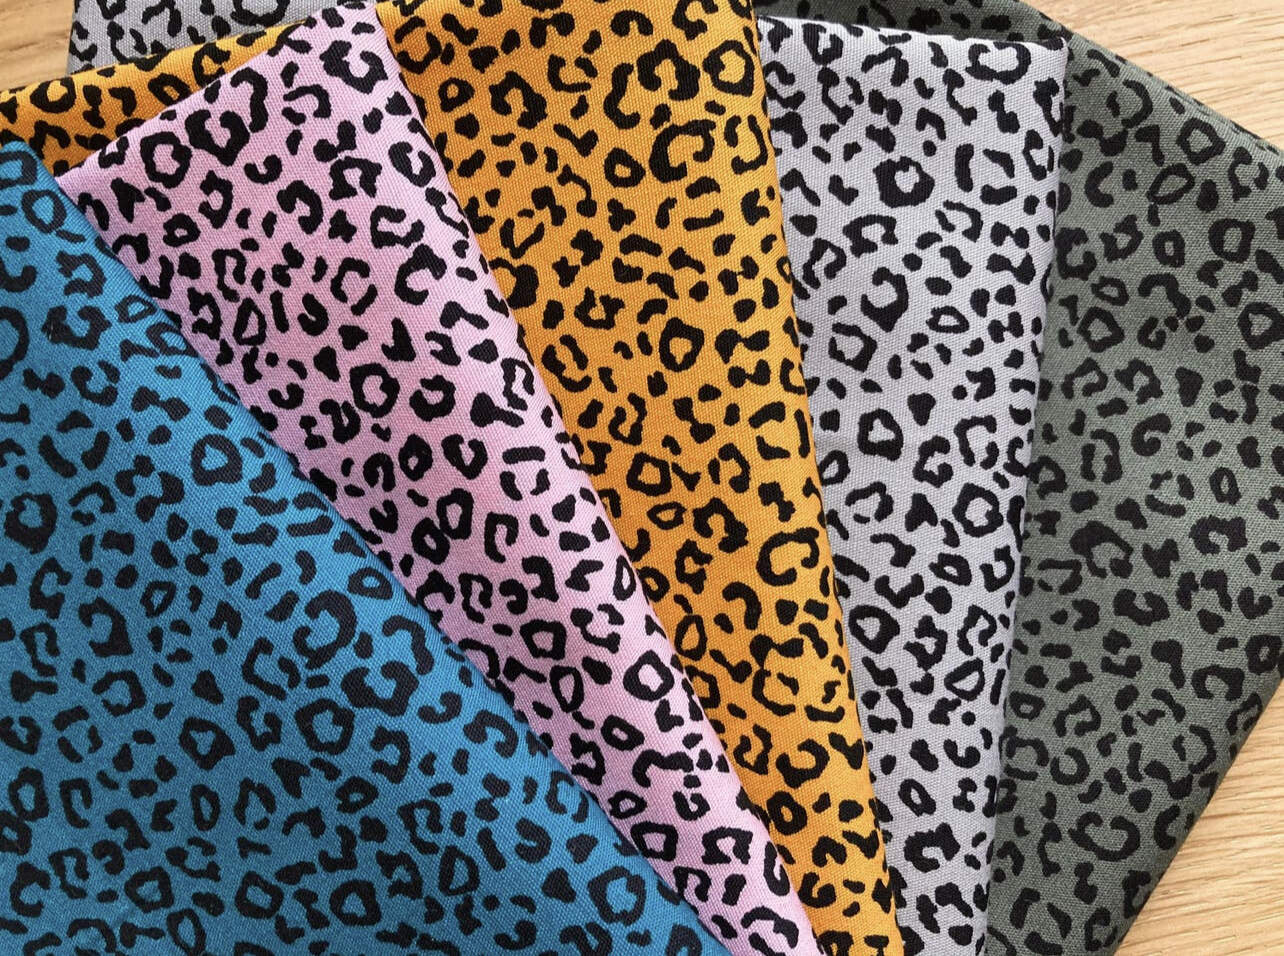 Face covering - small leopard print